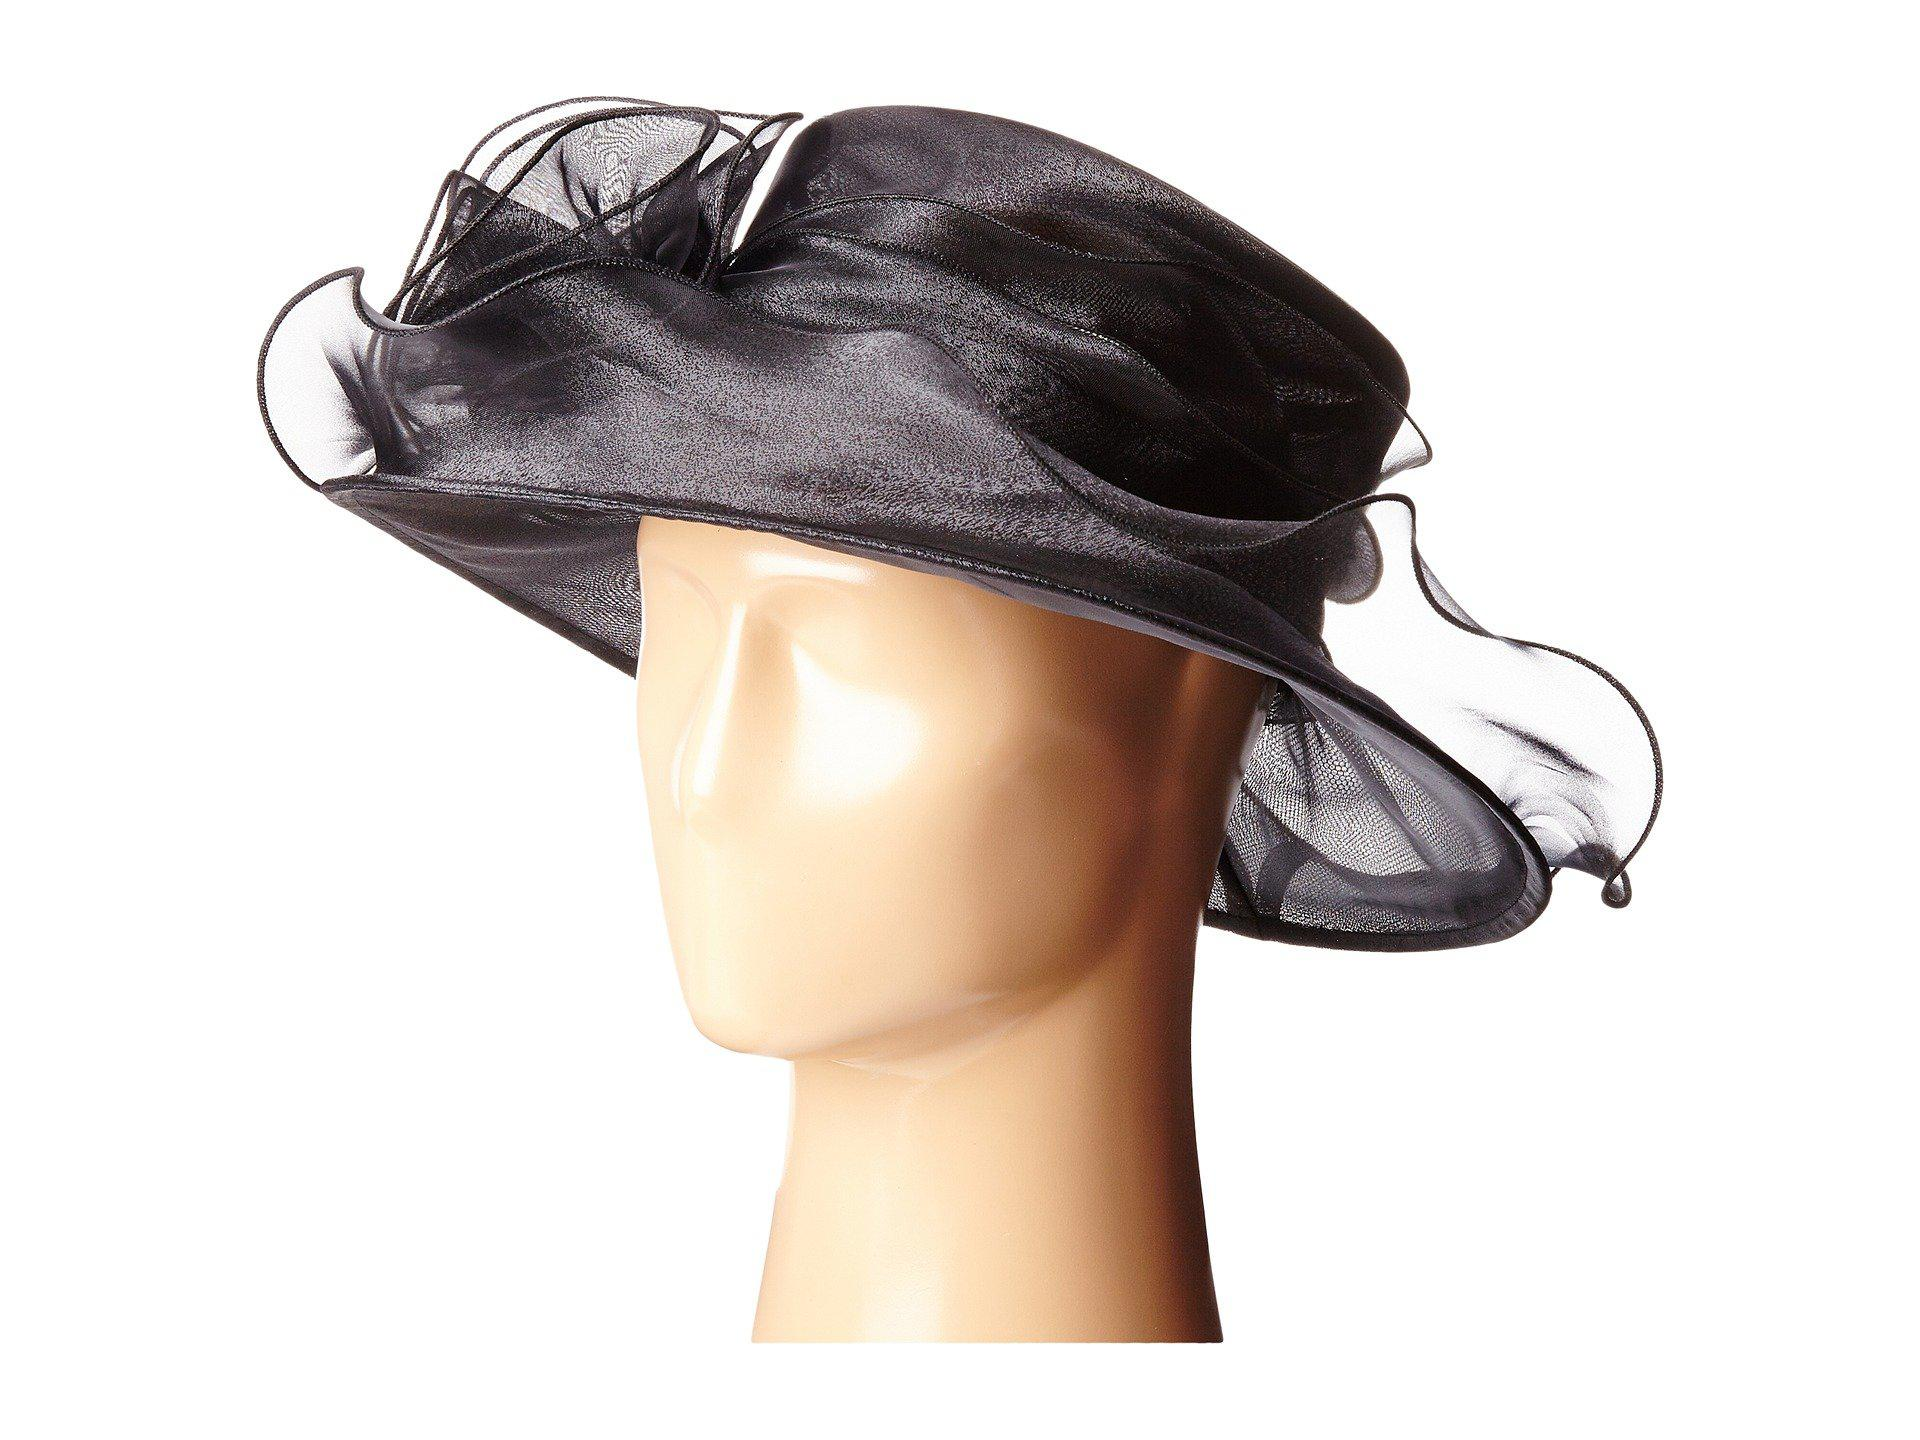 dfb5d640281a8 San Diego Hat Company Drs1004 Organza Dress/derby Hat With Wired ...